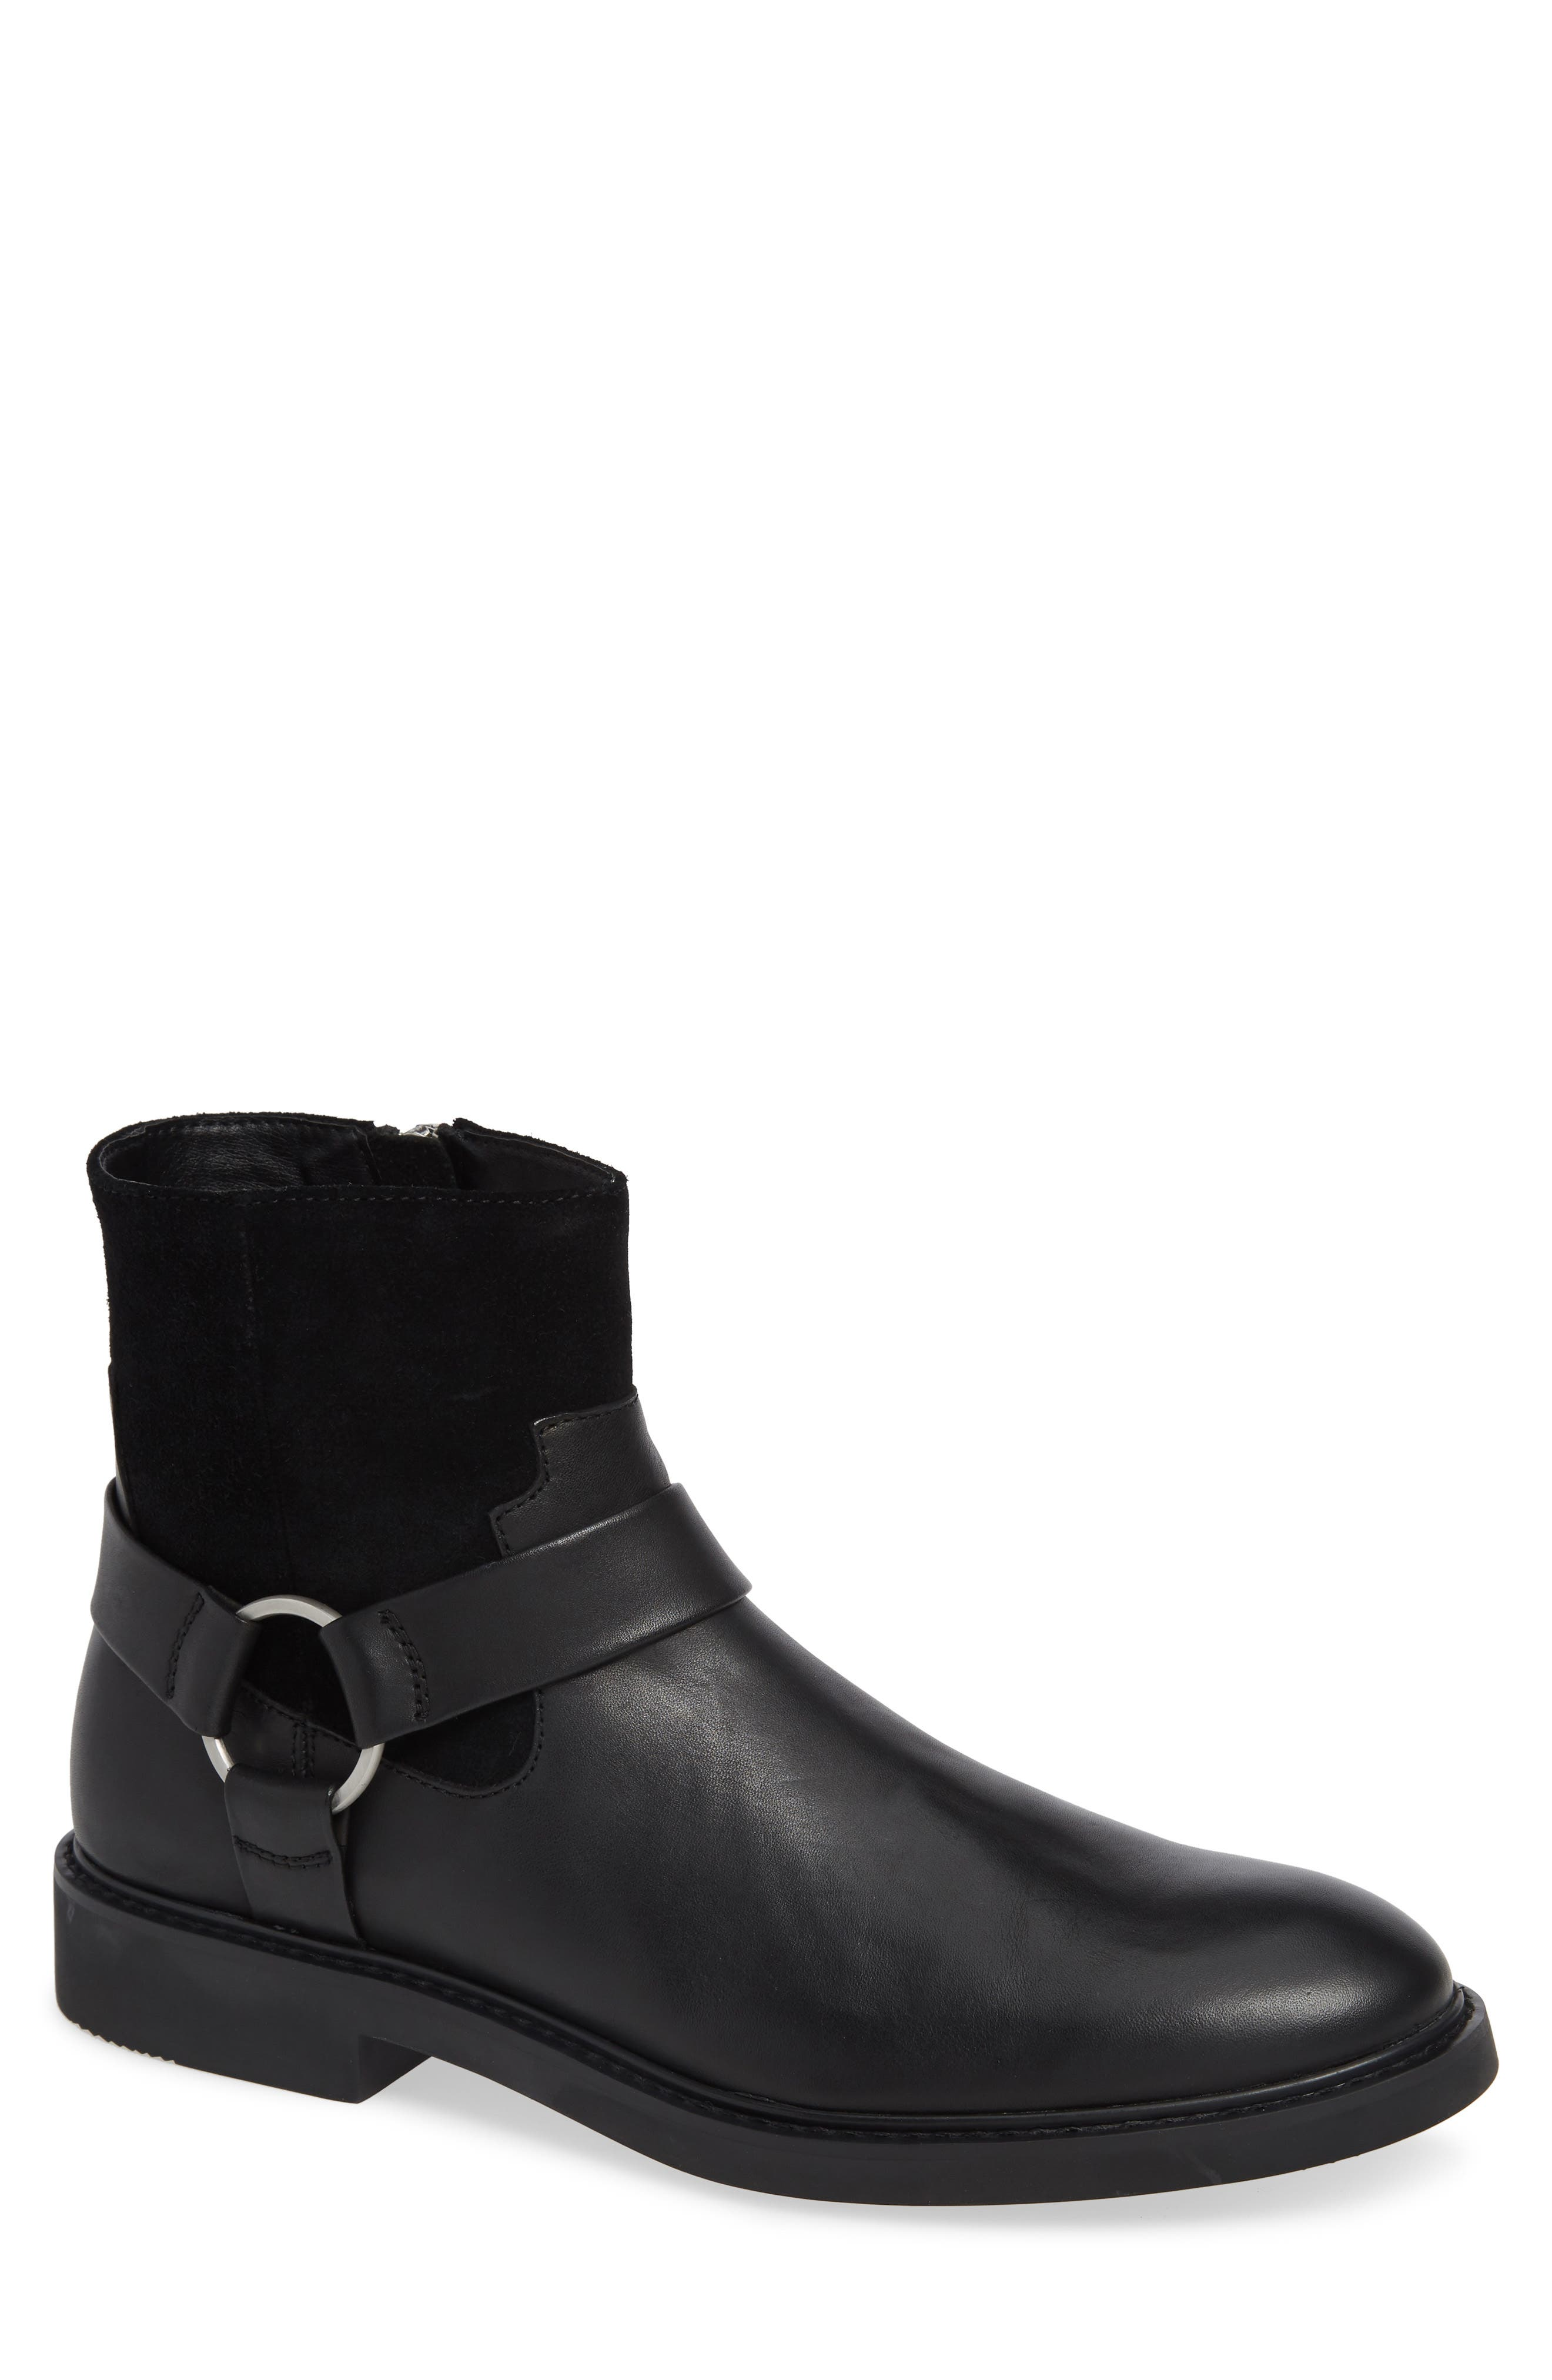 Vergil Zip Boot,                         Main,                         color, 001